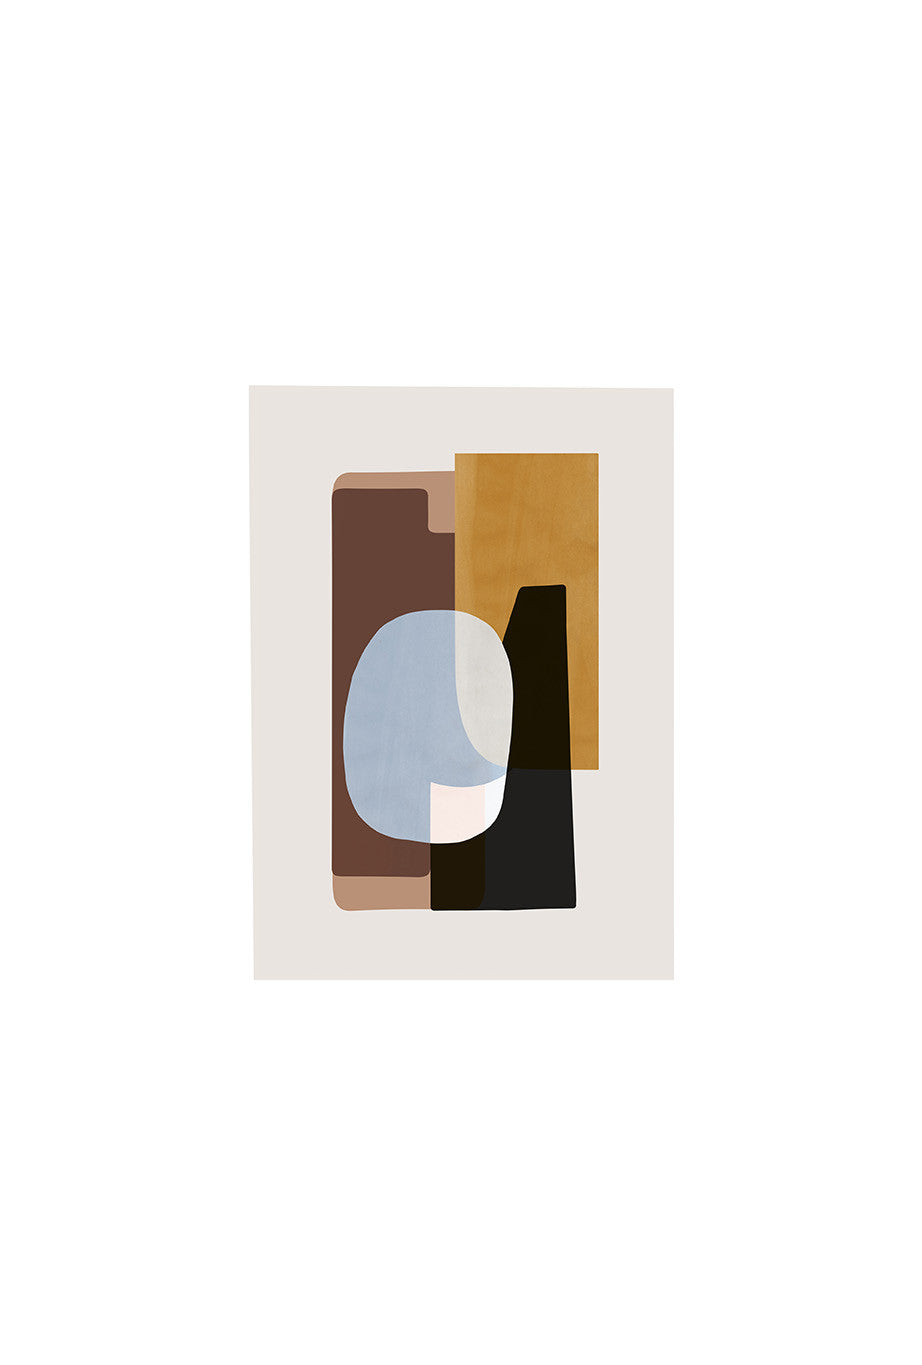 Abstraction Print (Small)